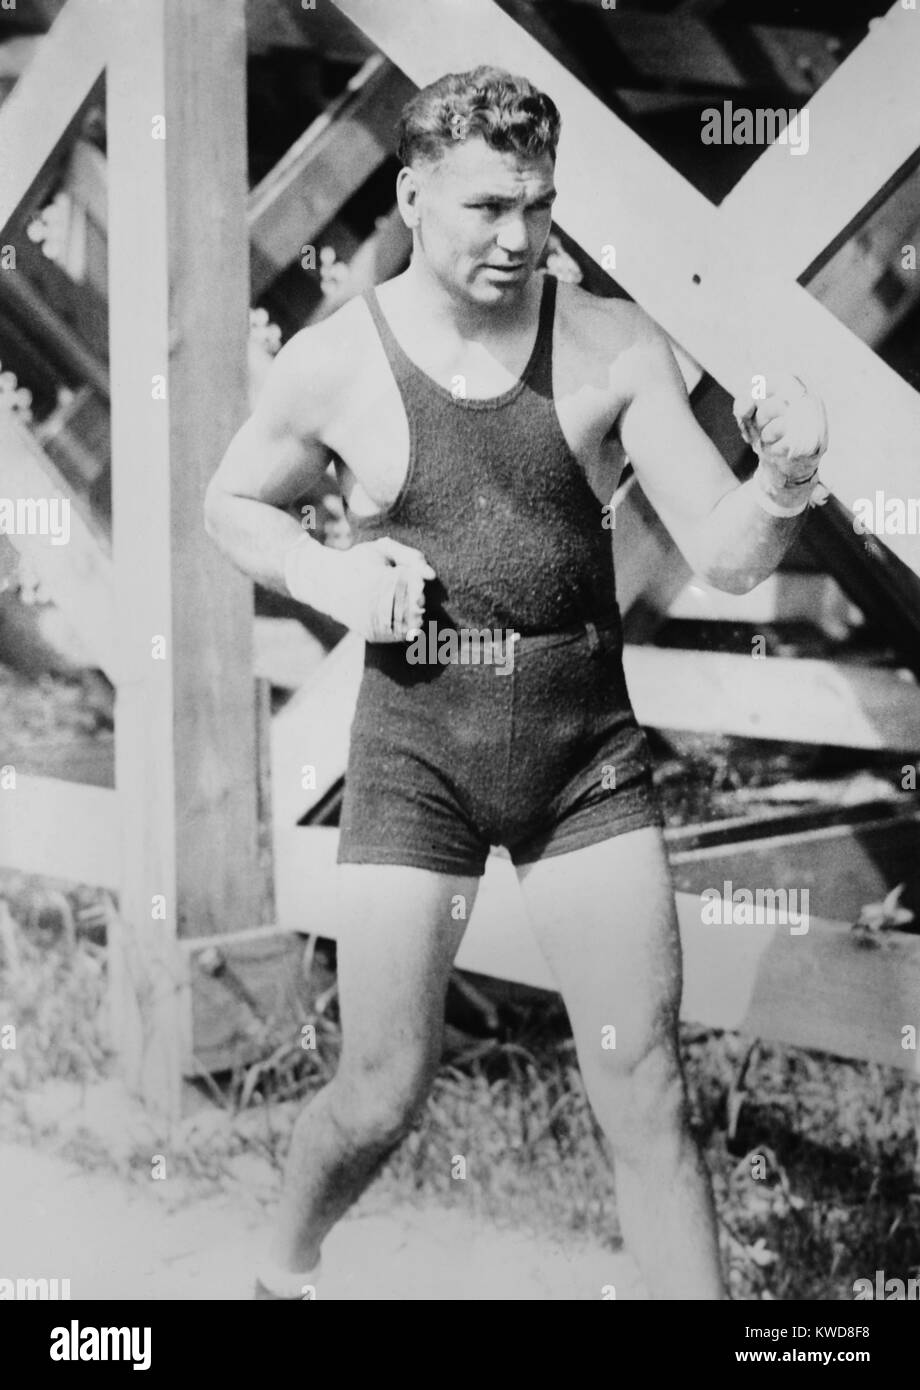 Jack Dempsey, the World Heavyweight Boxing Champion from 1919 to